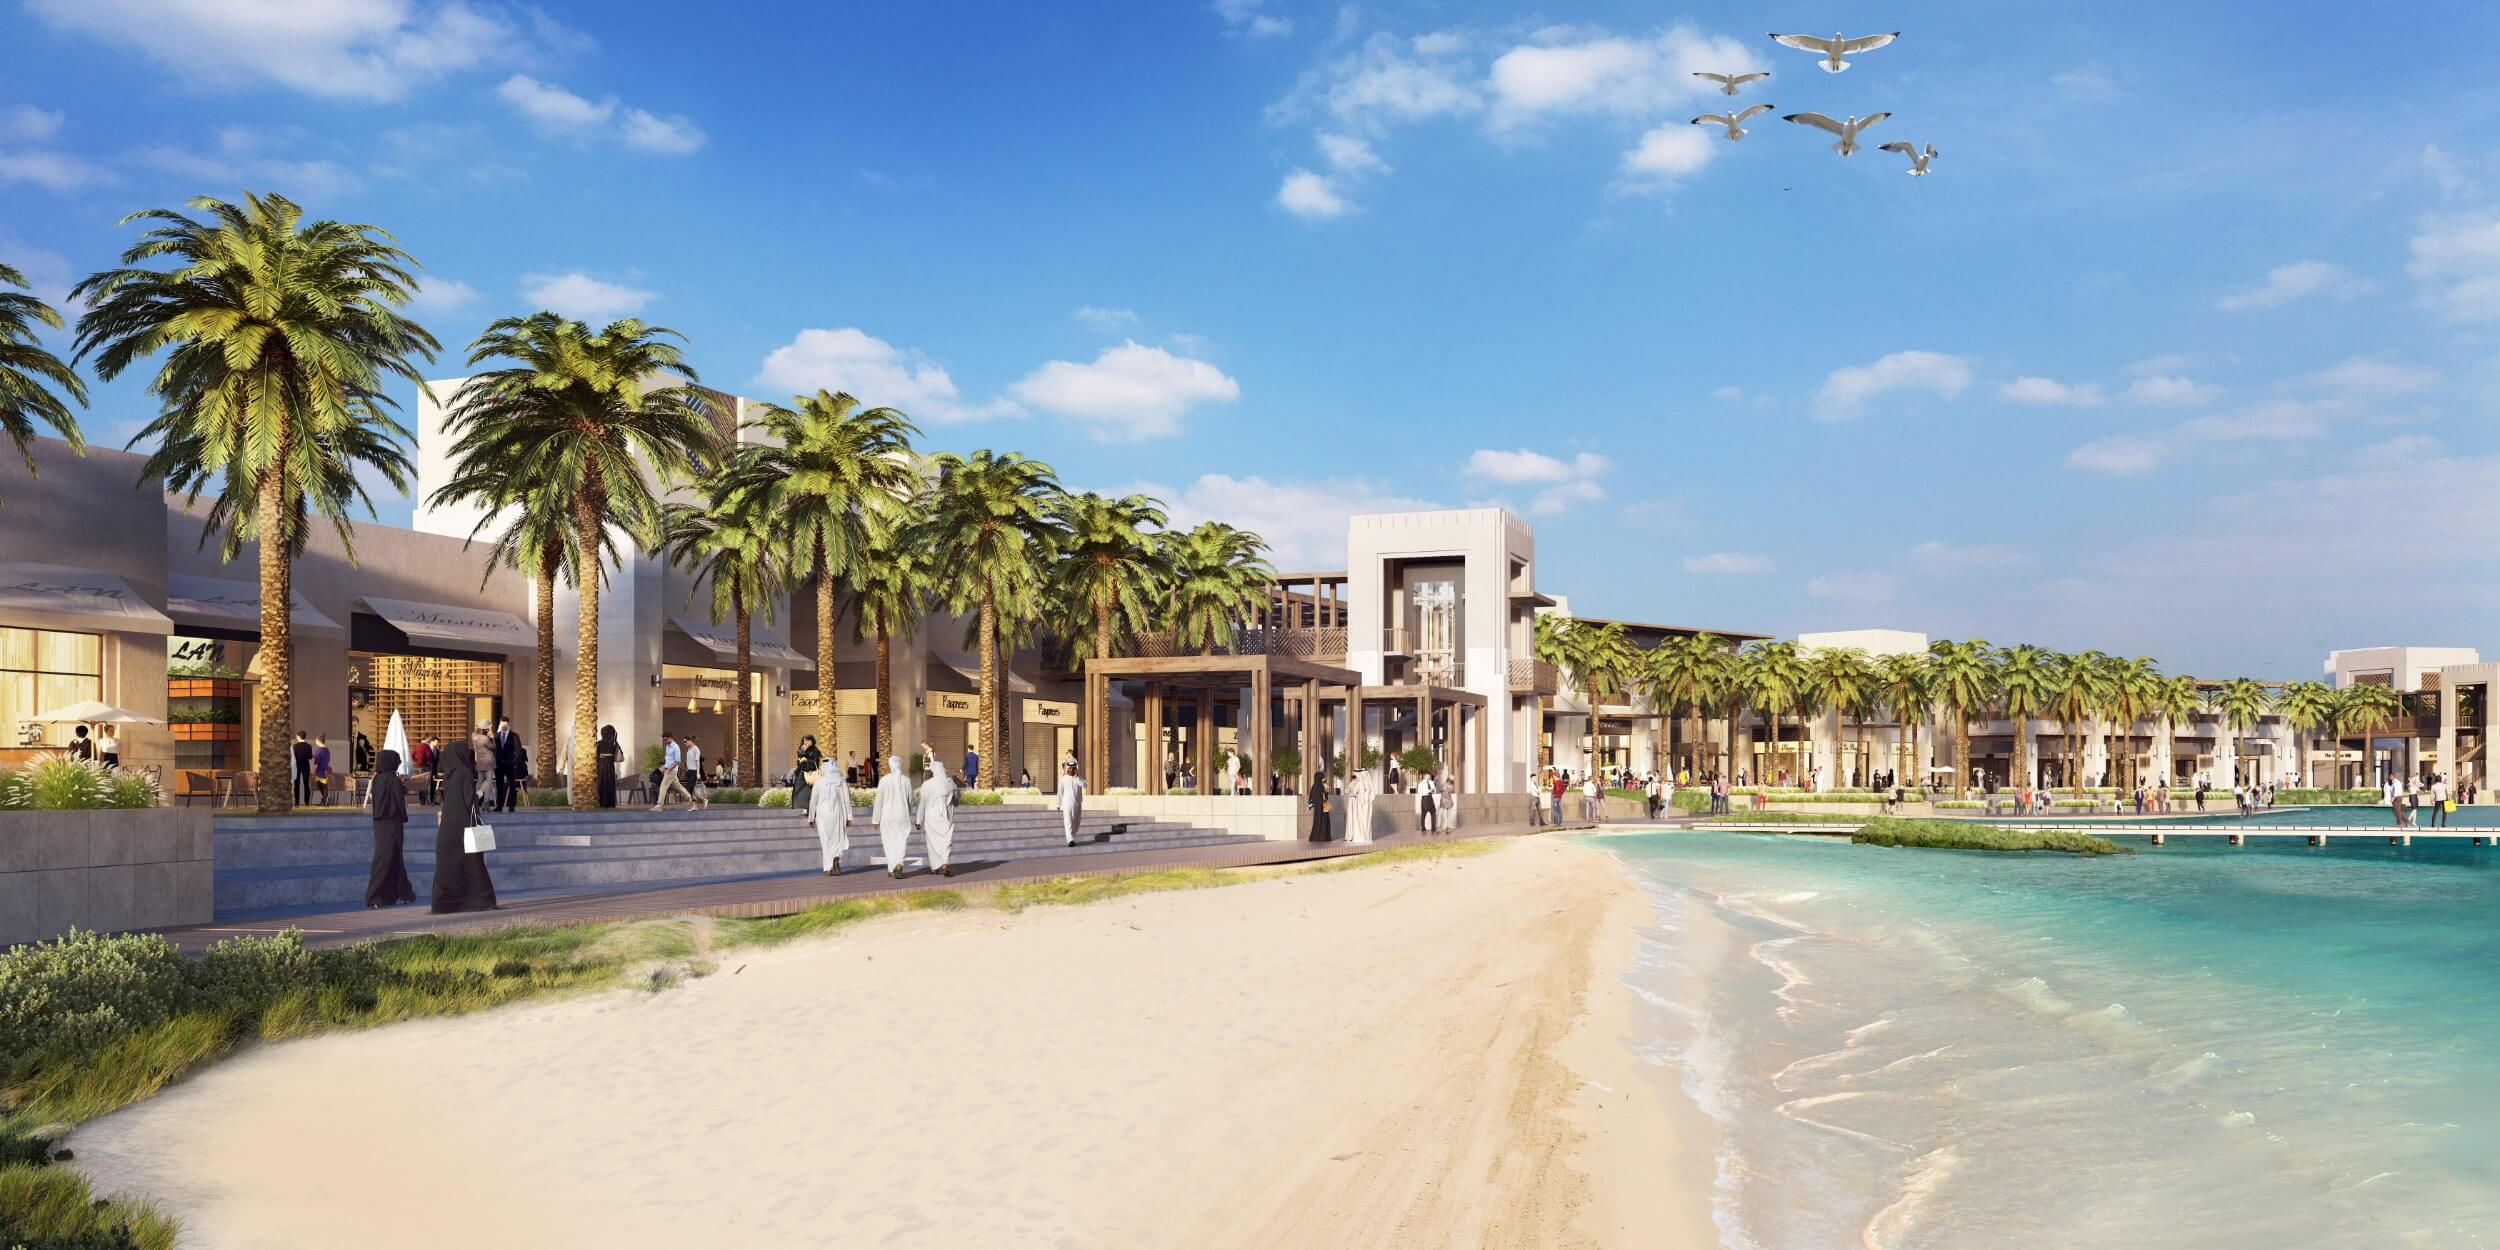 Kalba Waterfront real estate opportunities